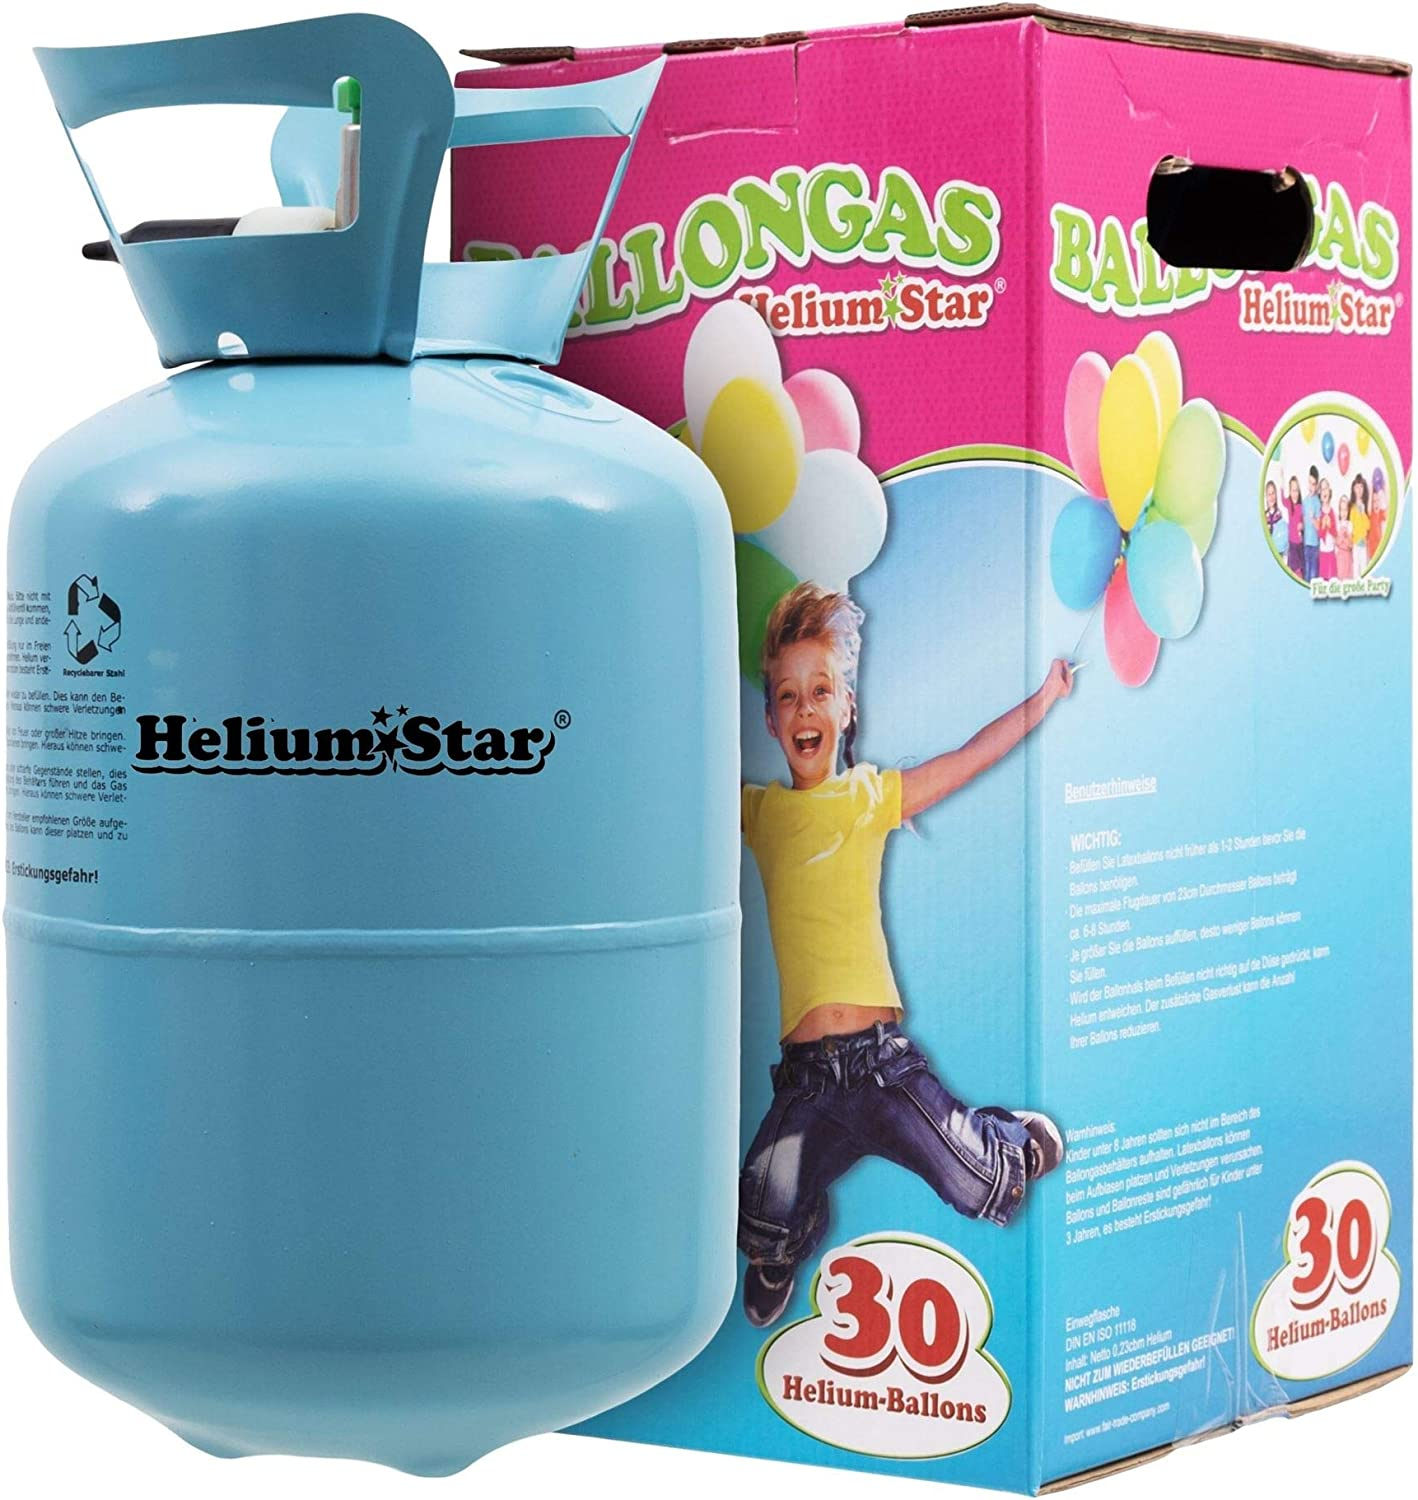 Balloons + Band Helium GAS ballongas Disposable for approximately 30-50 Balloons Accessories